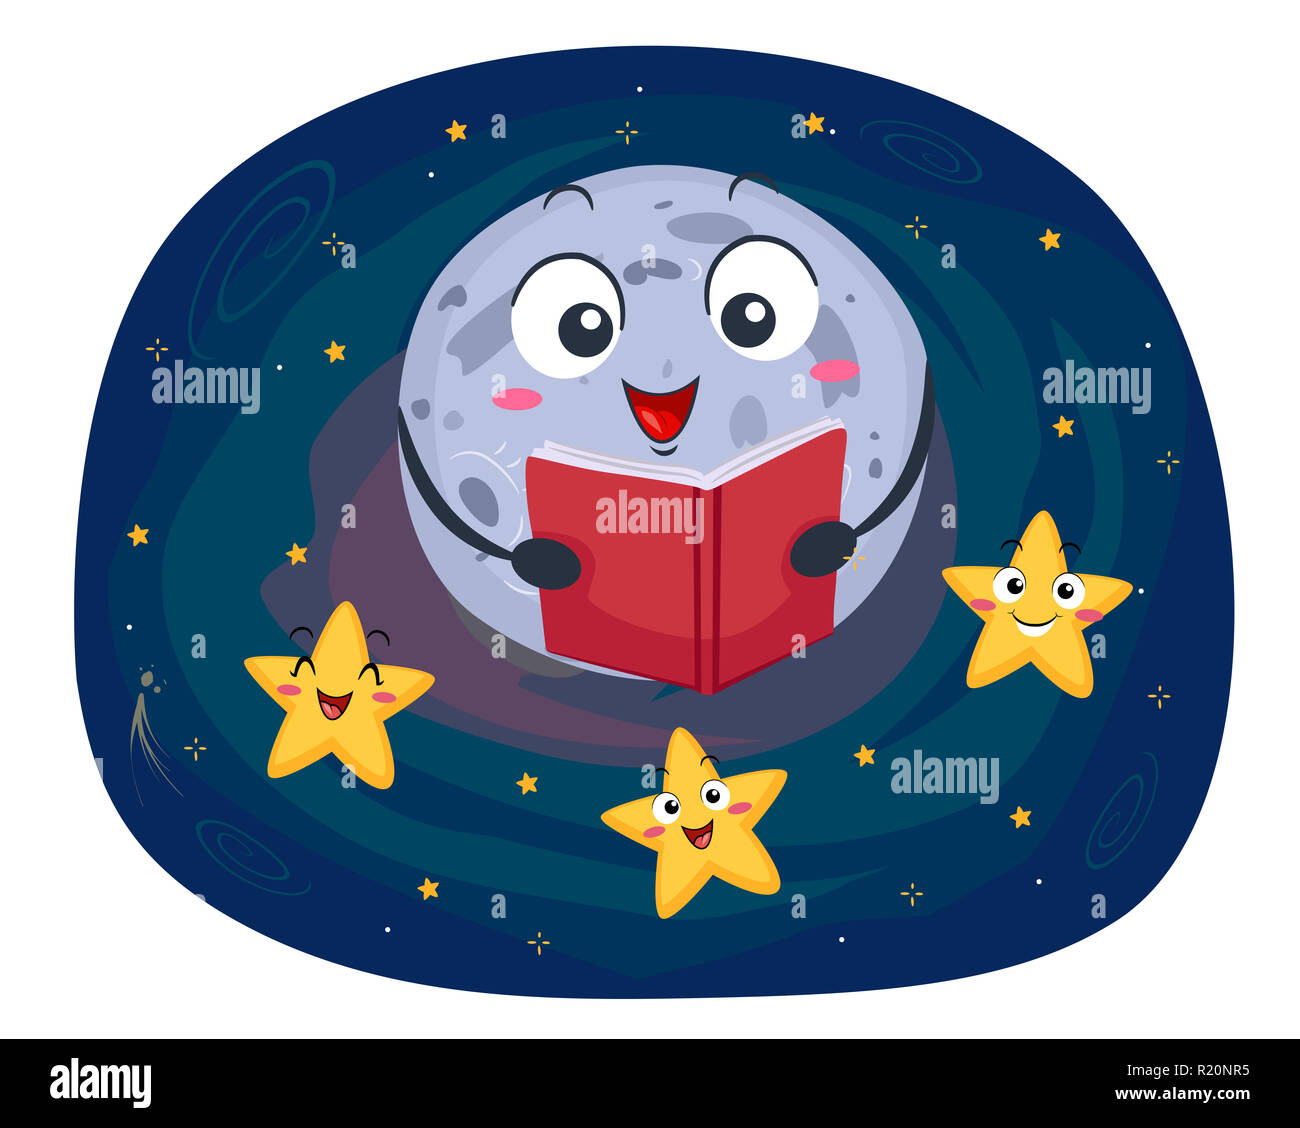 Colorful Mascot Illustration Featuring a Full Moon Reading a Bedtime Story to a Group of Stars - Stock Image